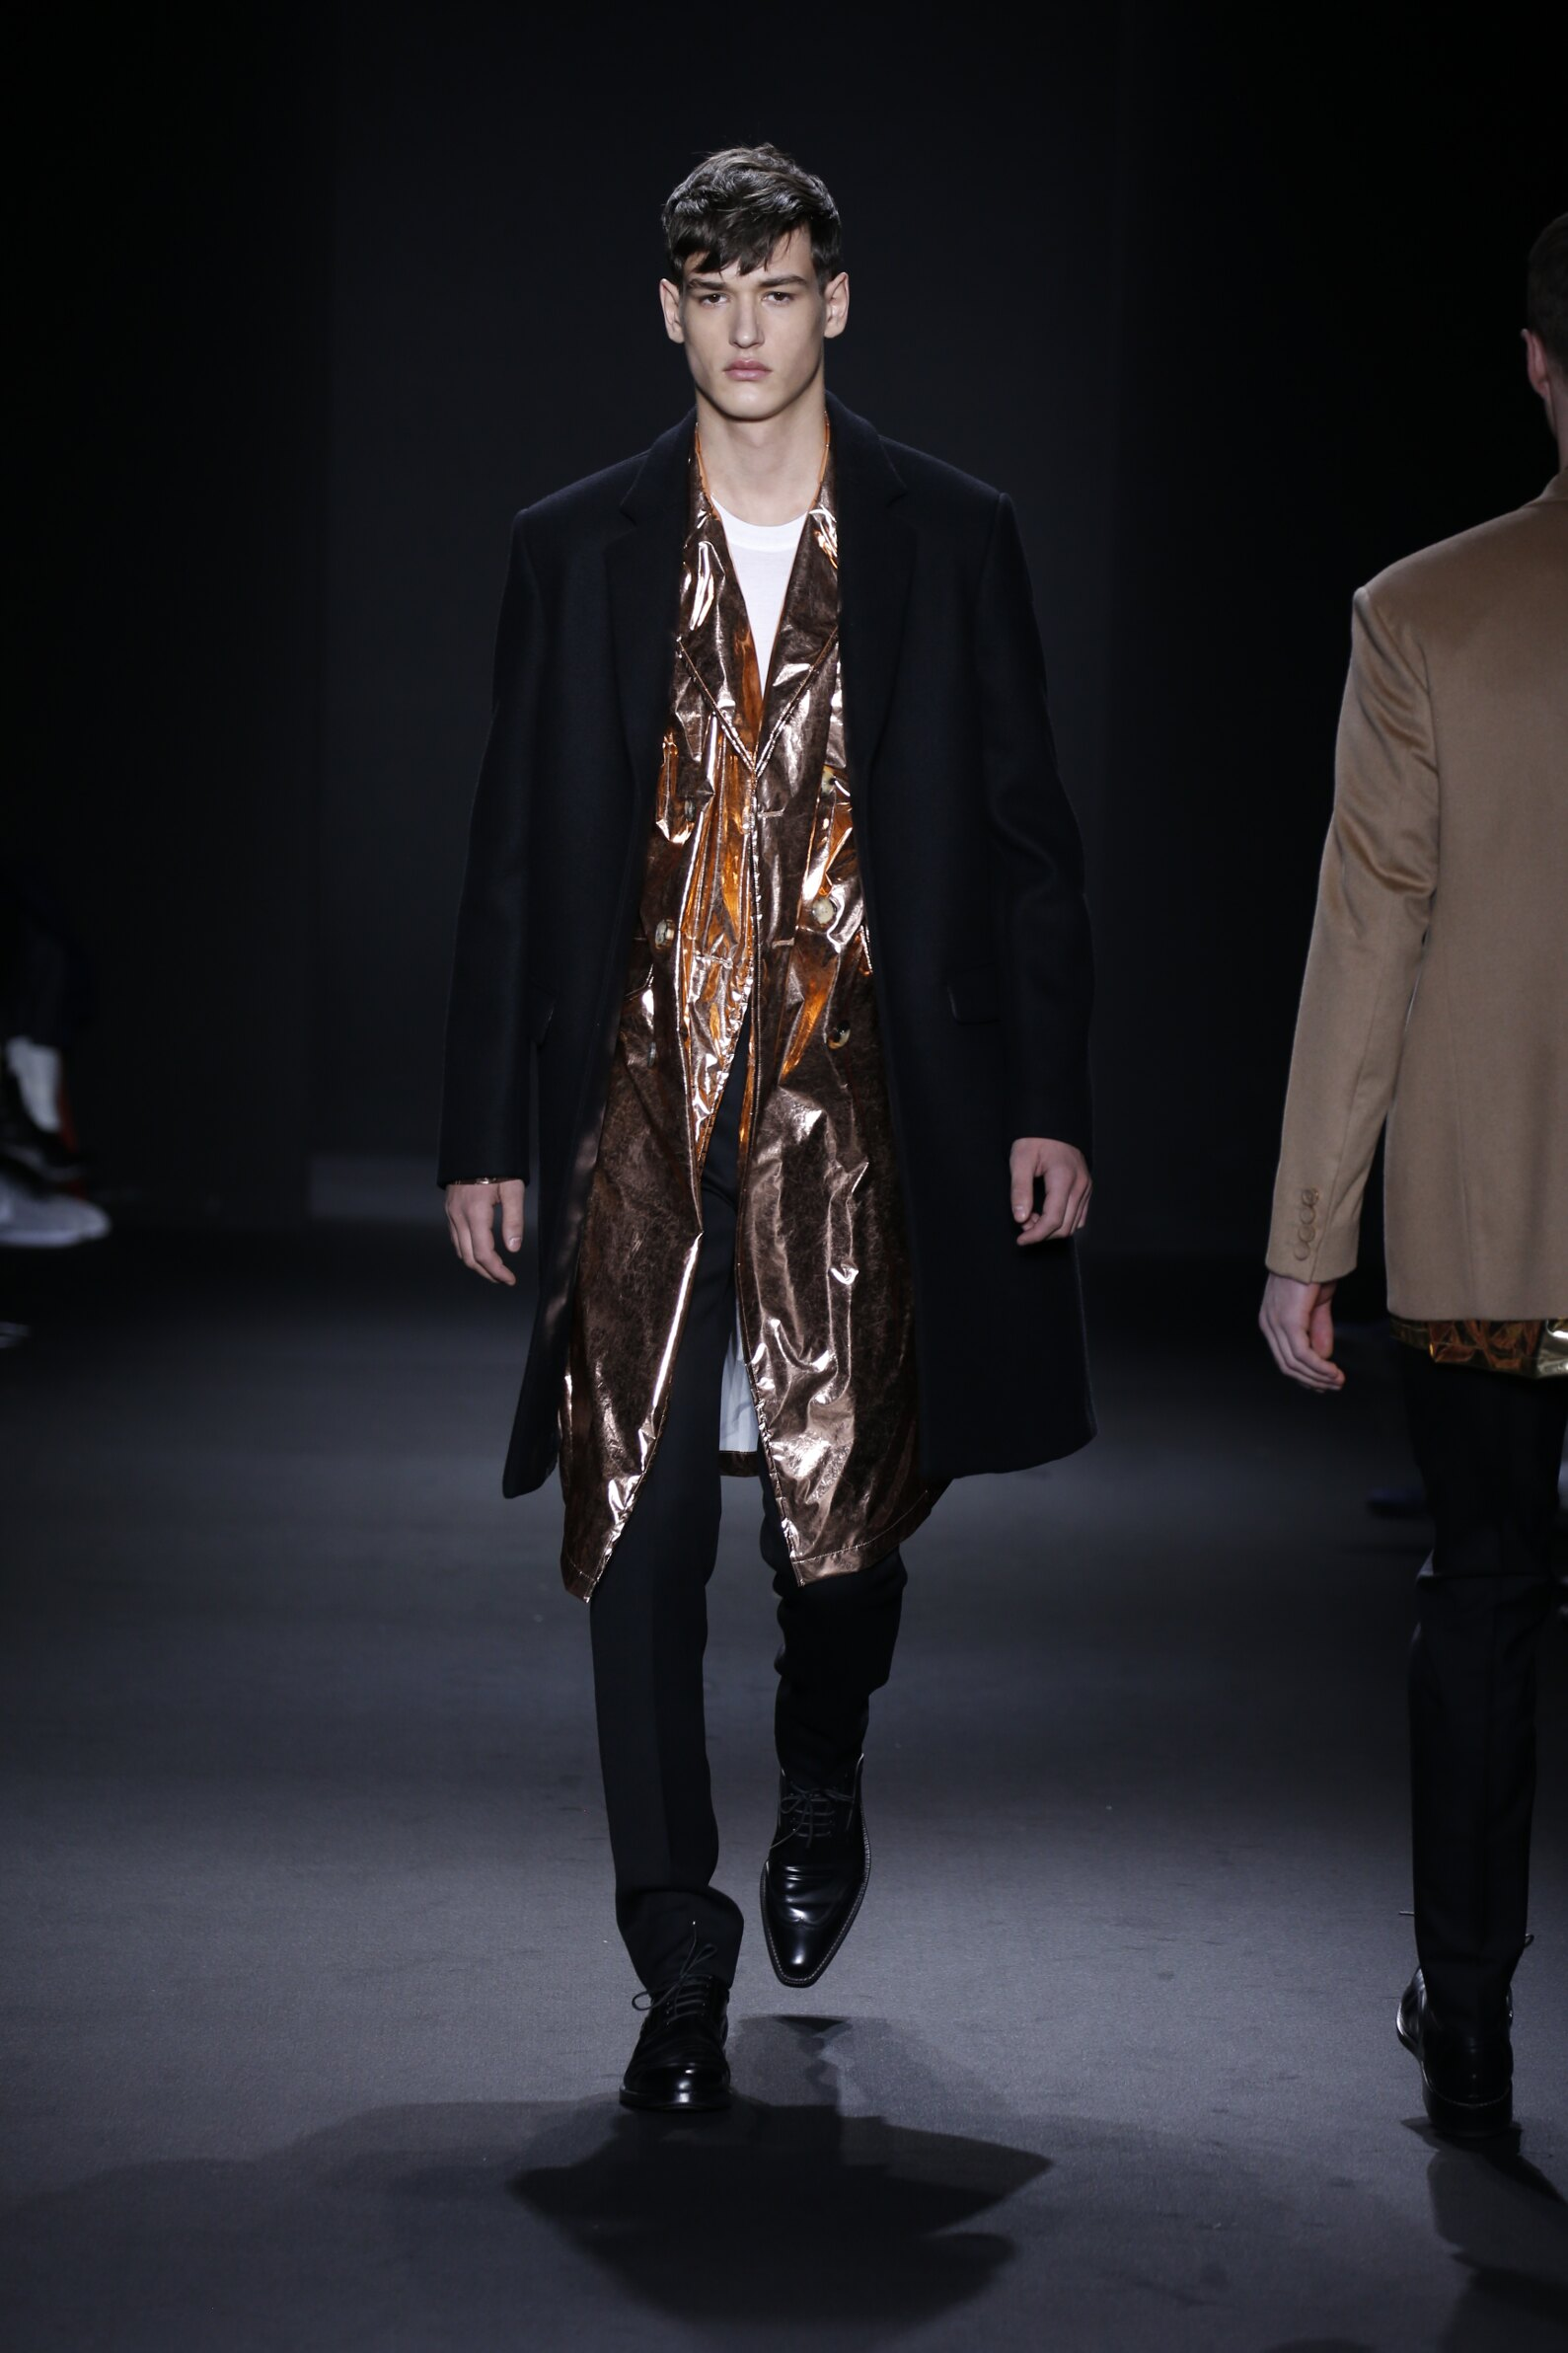 Runway Calvin Klein Collection Fall Winter 2016 Men Milan Fashion Week